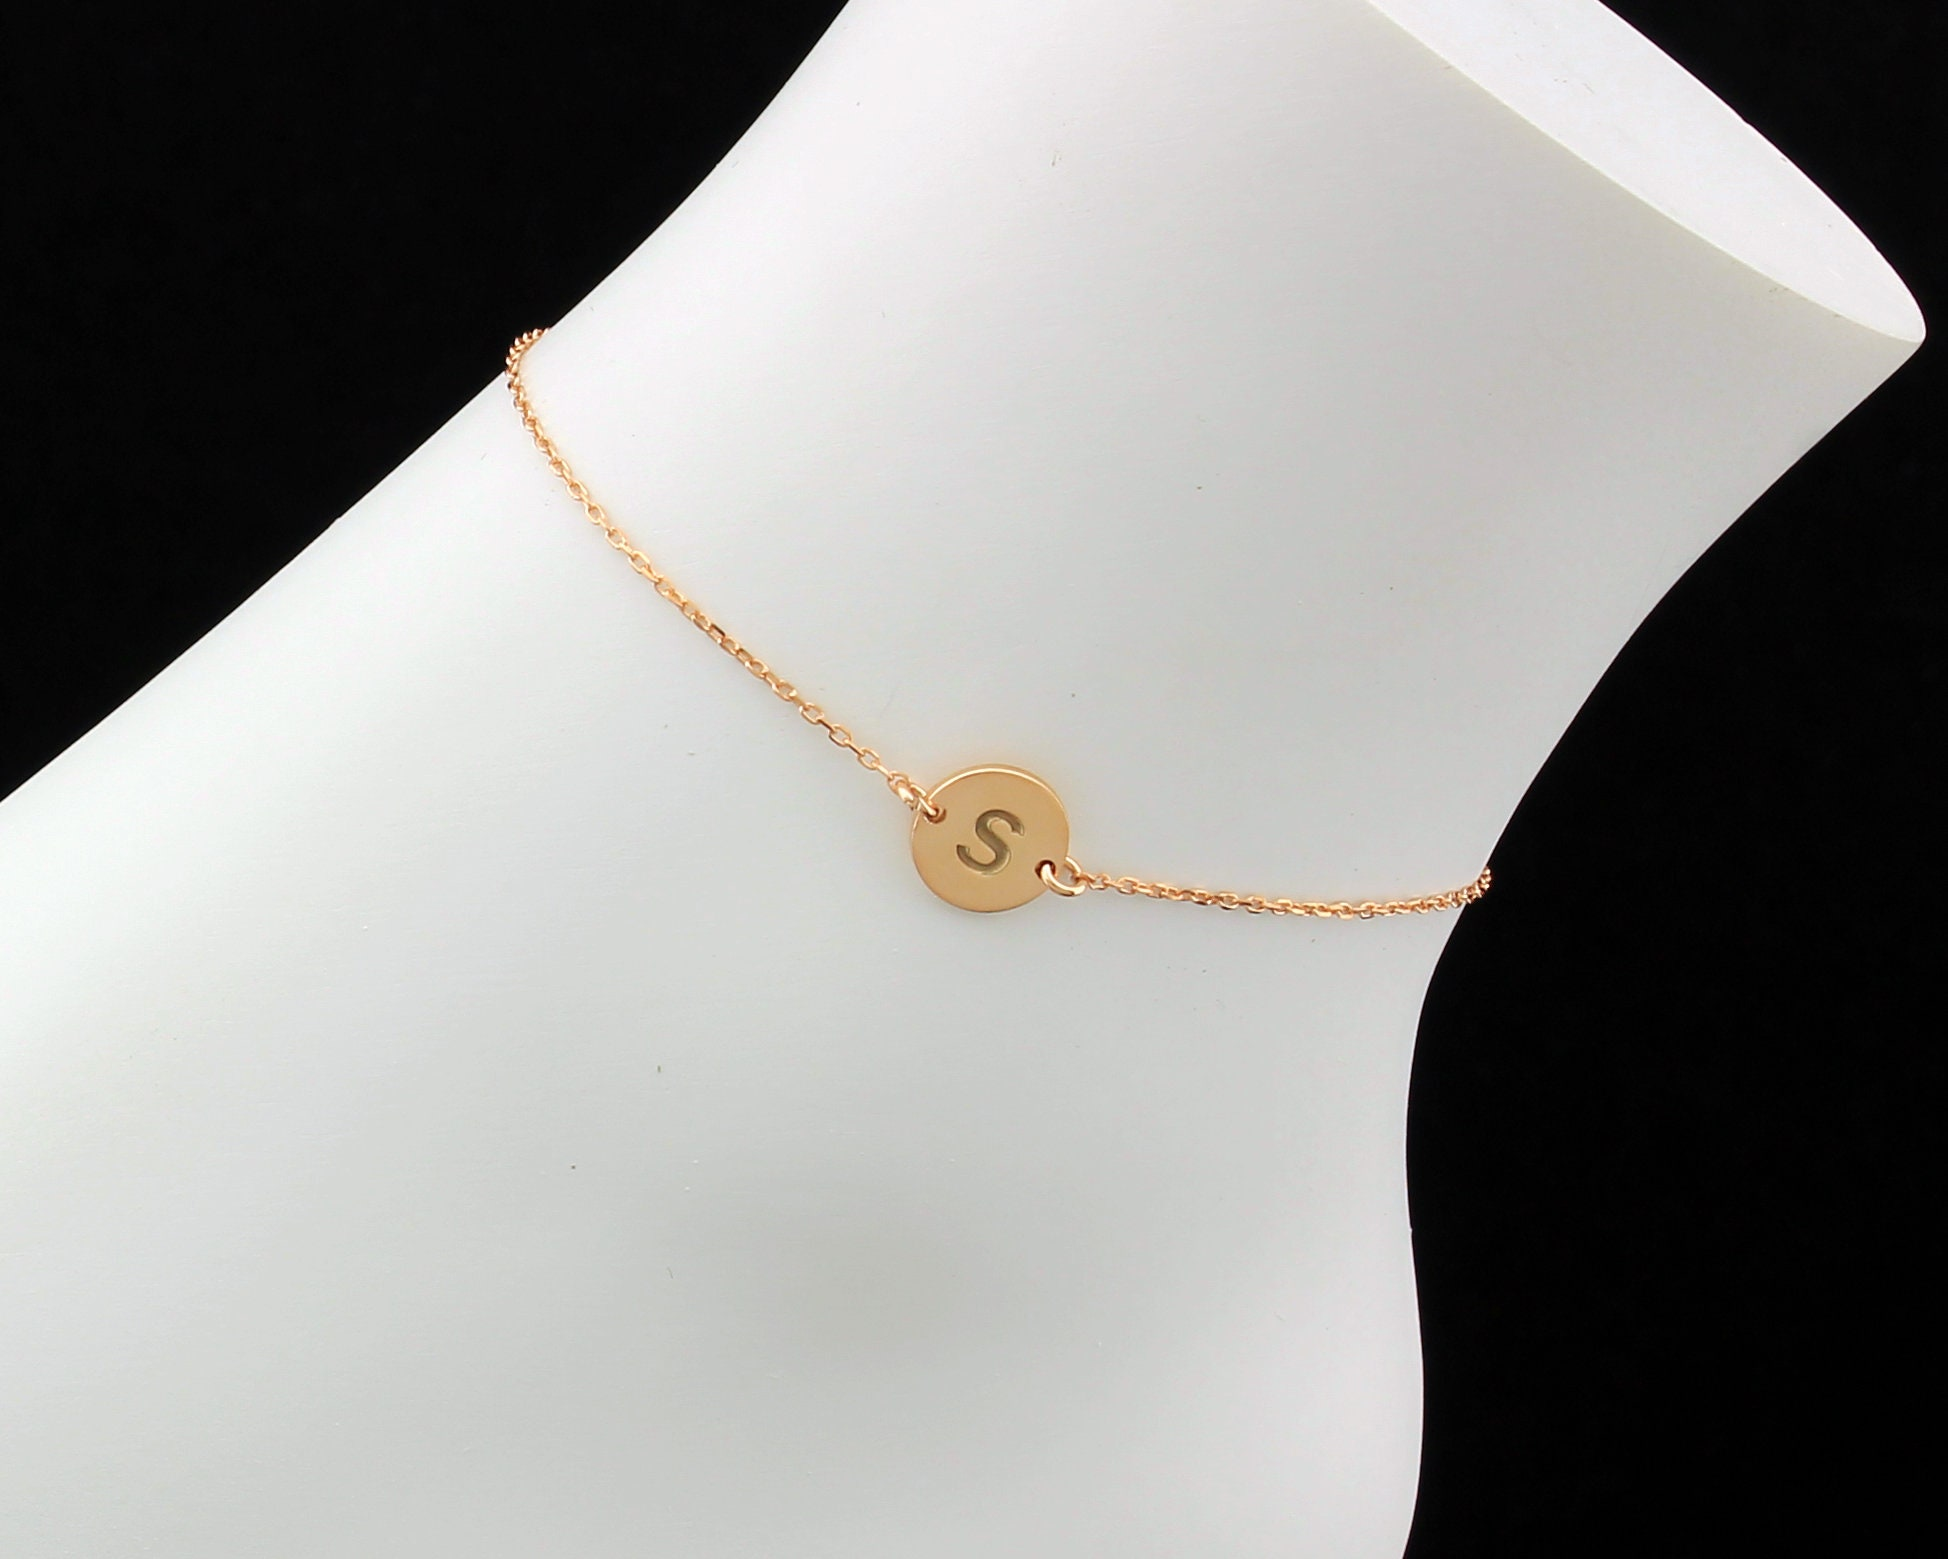 and jewelry women bracelet silver ankle chain anklet kinds of girls anklets quality from gold arrival bracelets foot product top all fashion for new